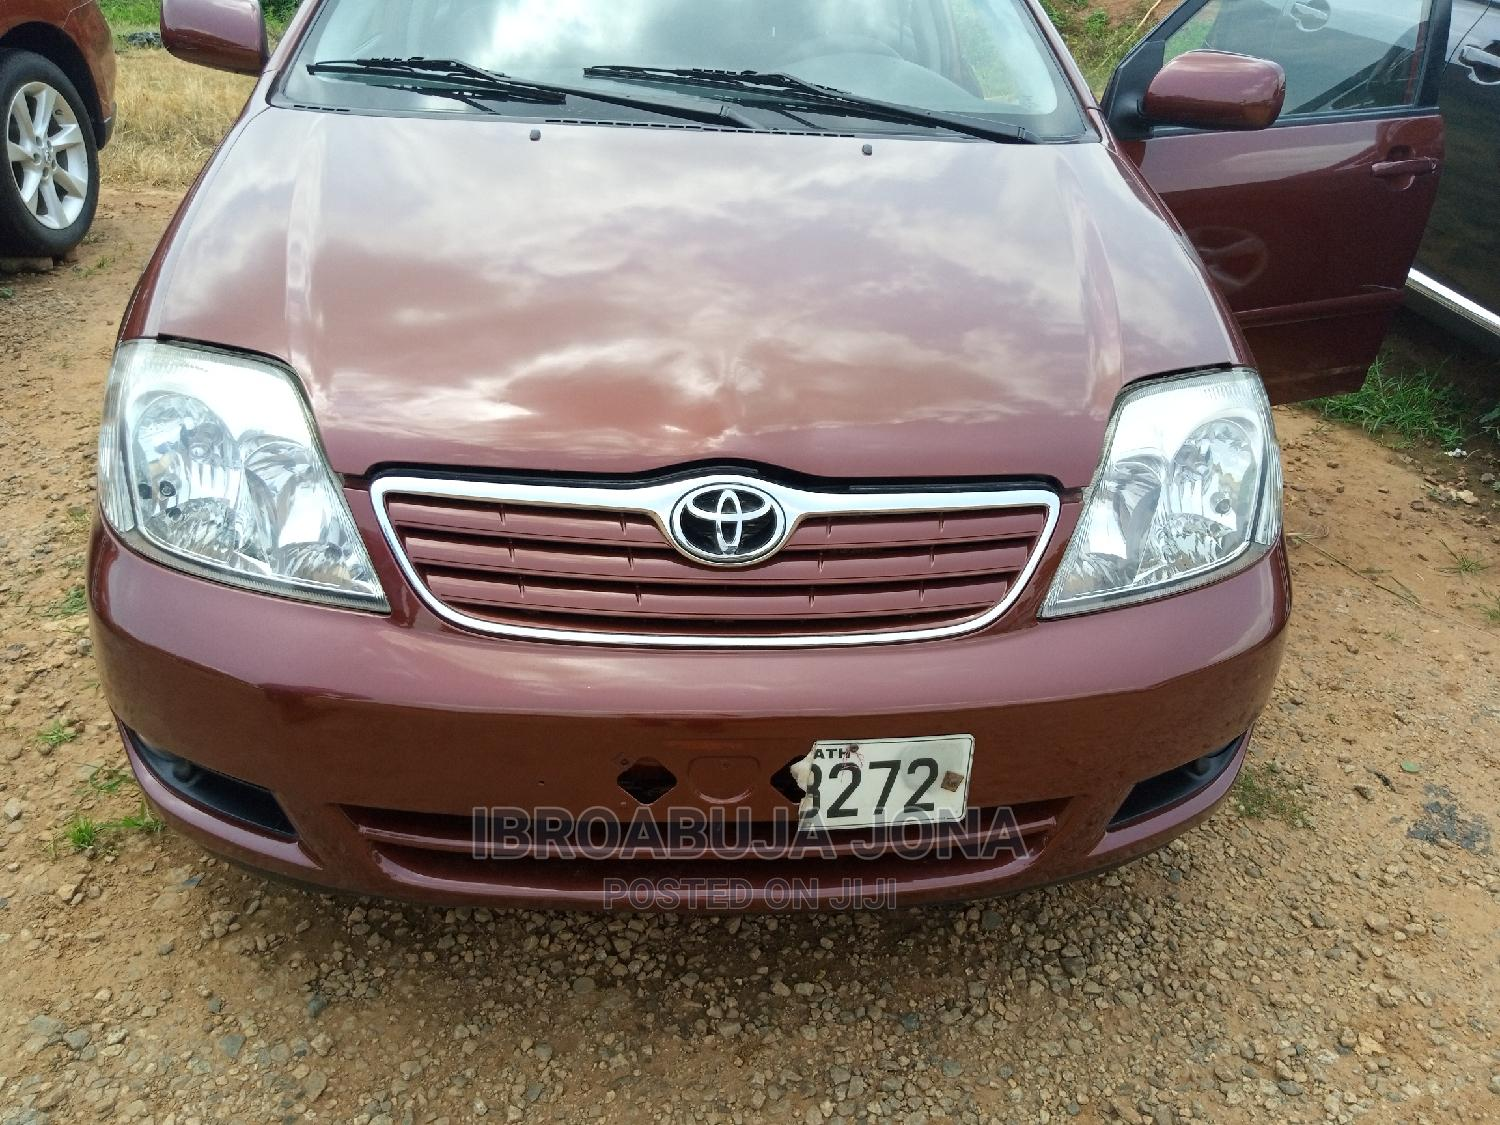 Archive: Toyota Corolla 2005 1.8 TS Other